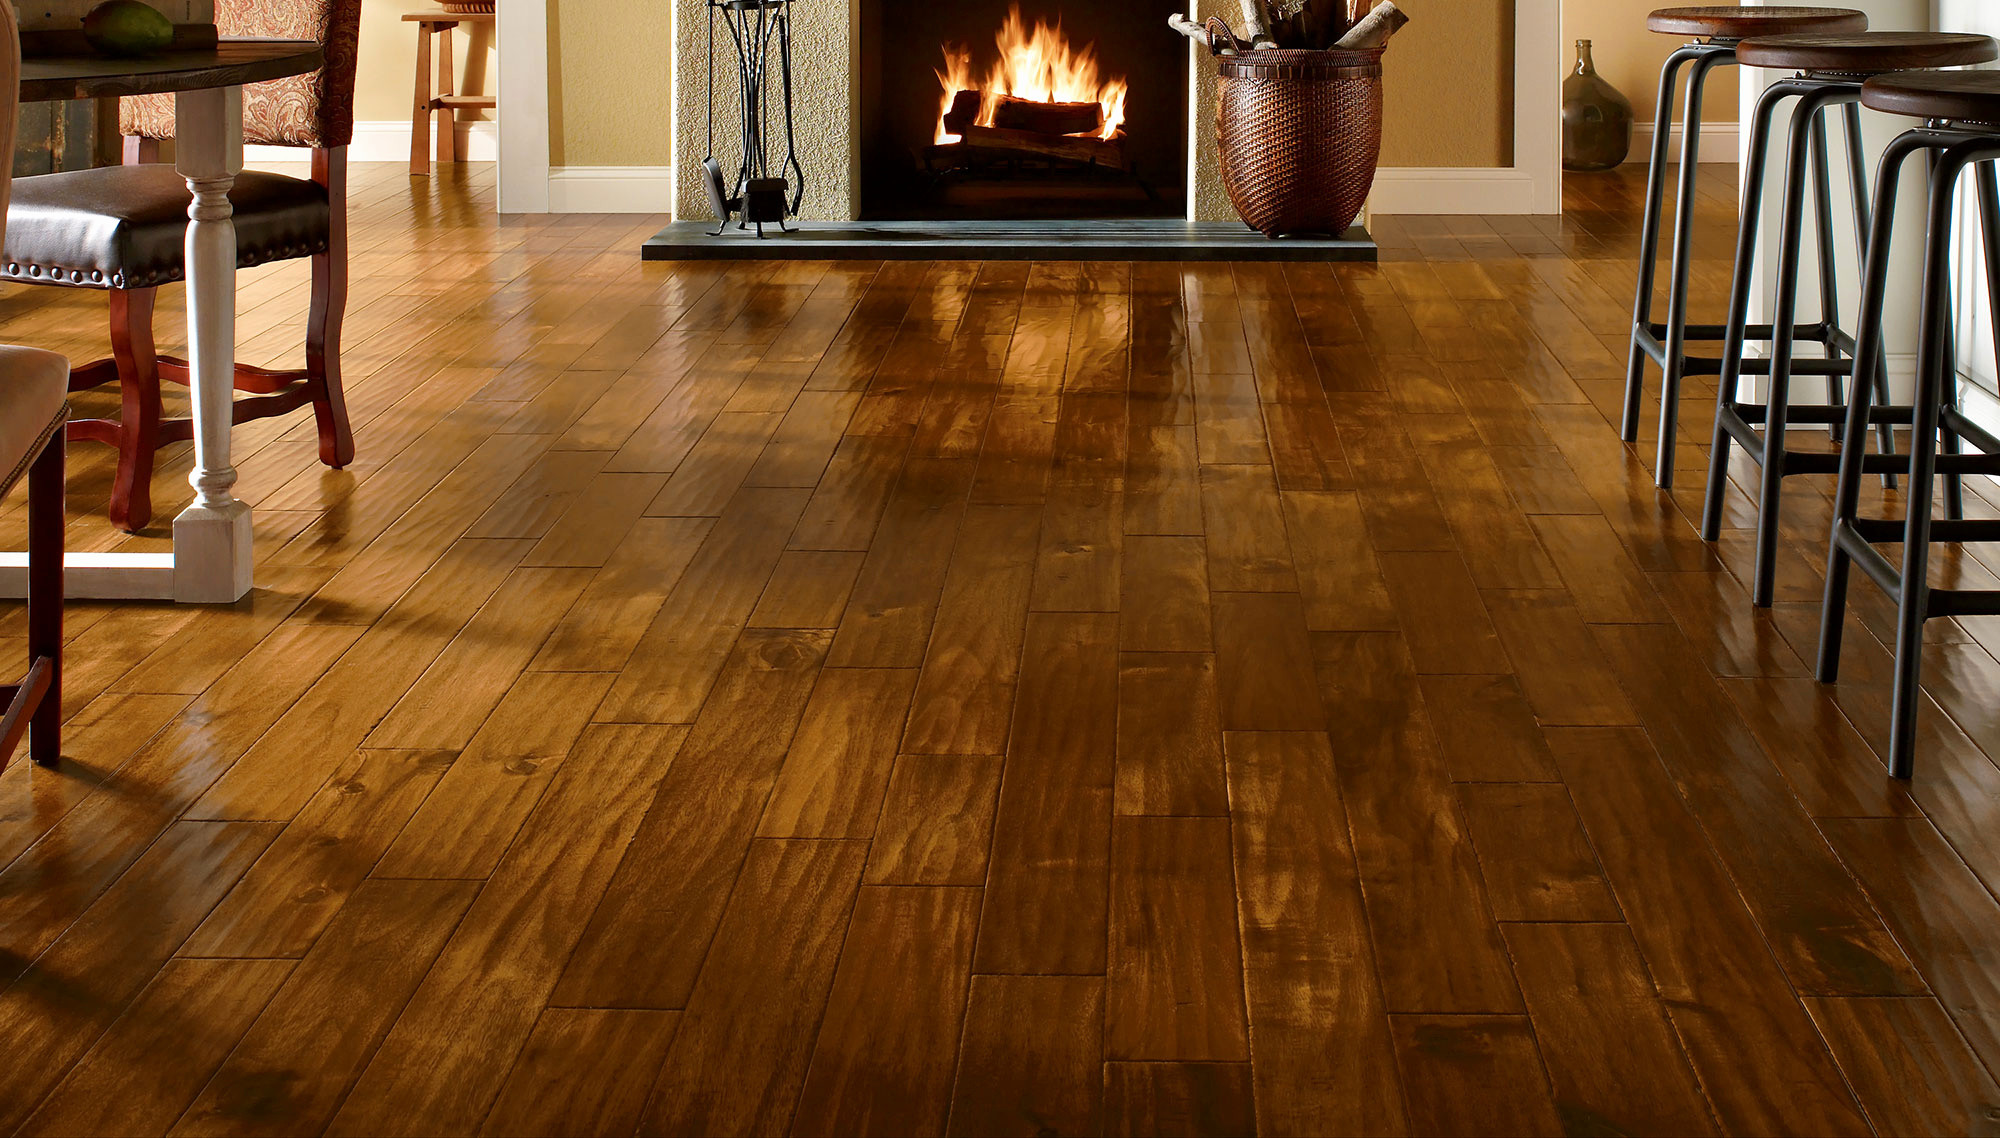 hardwood floors magazine of hardwood floor refinishing archives wlcu intended for hardwood floor designs best of appealing discount hardwood flooring 1 big kitchen floor hardwood floor